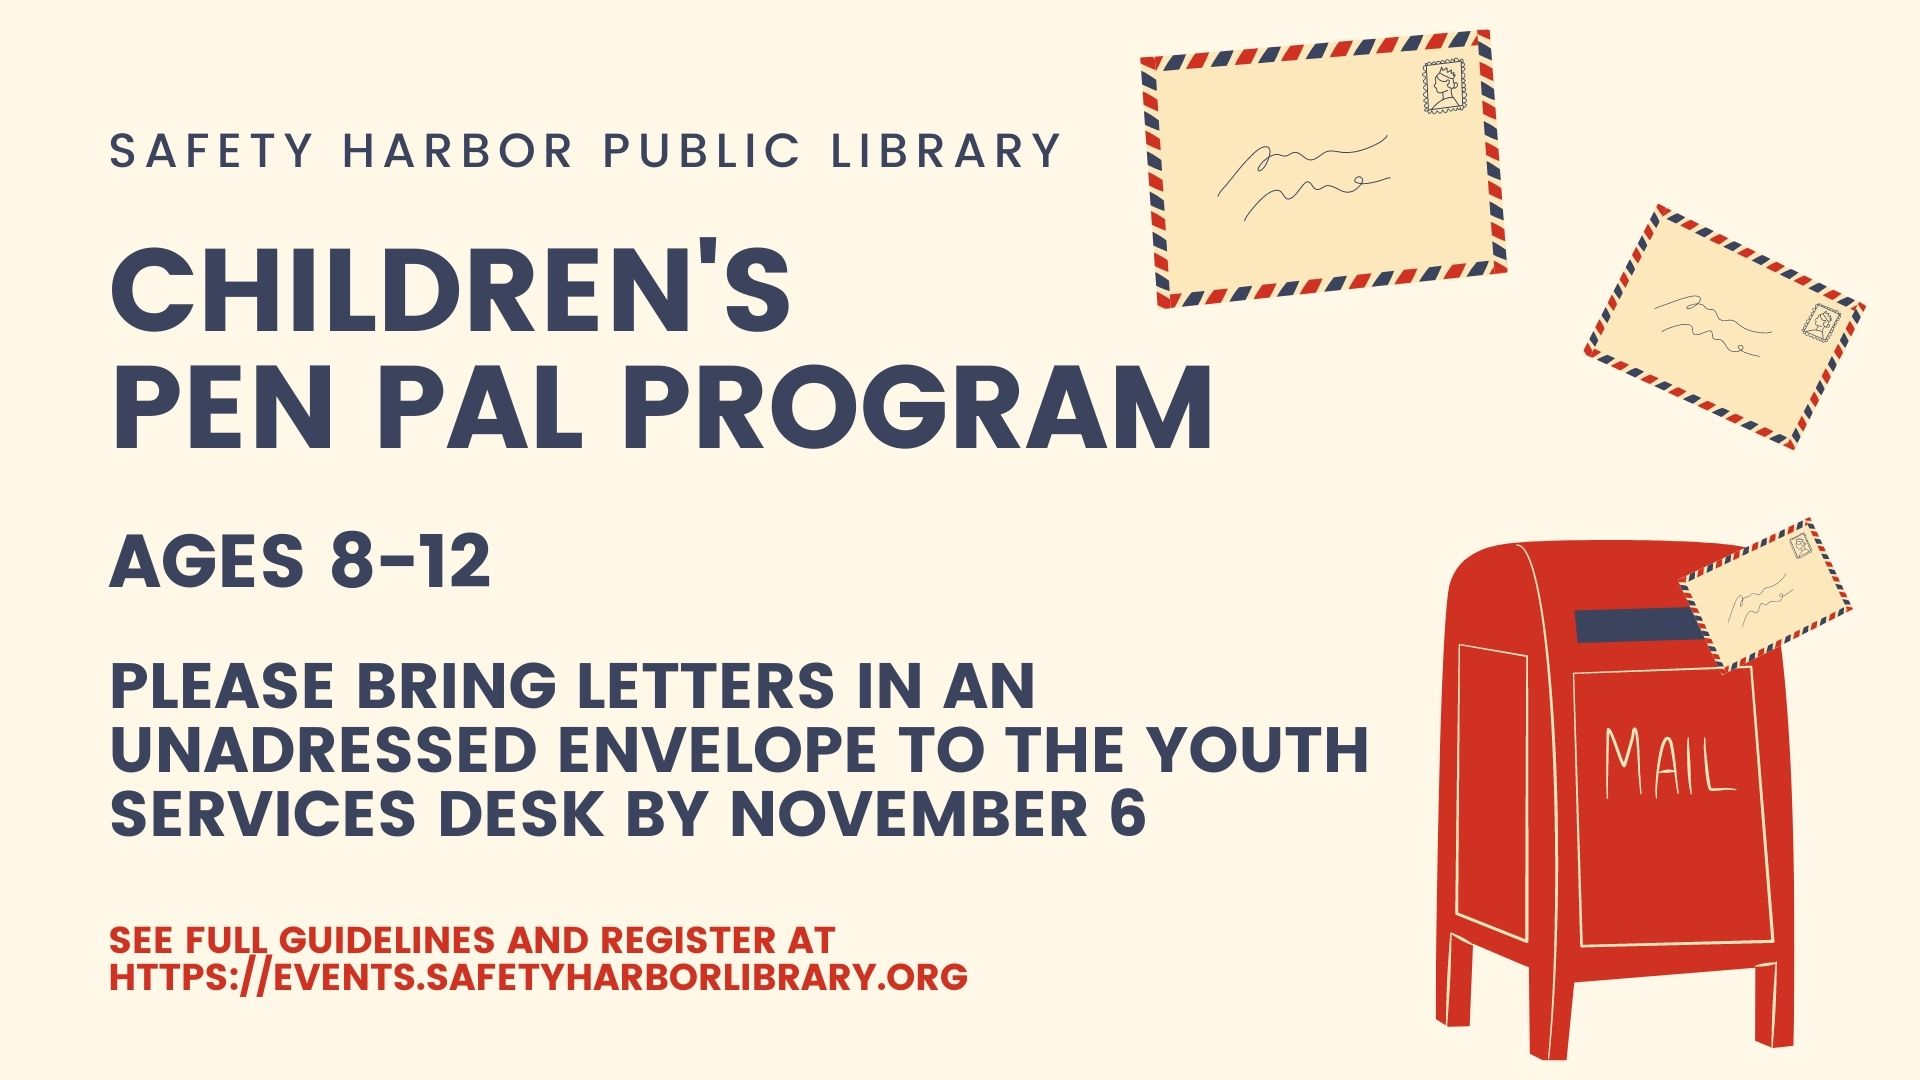 Children's Pen Pal Program flyer with an image of a mailbox and letters